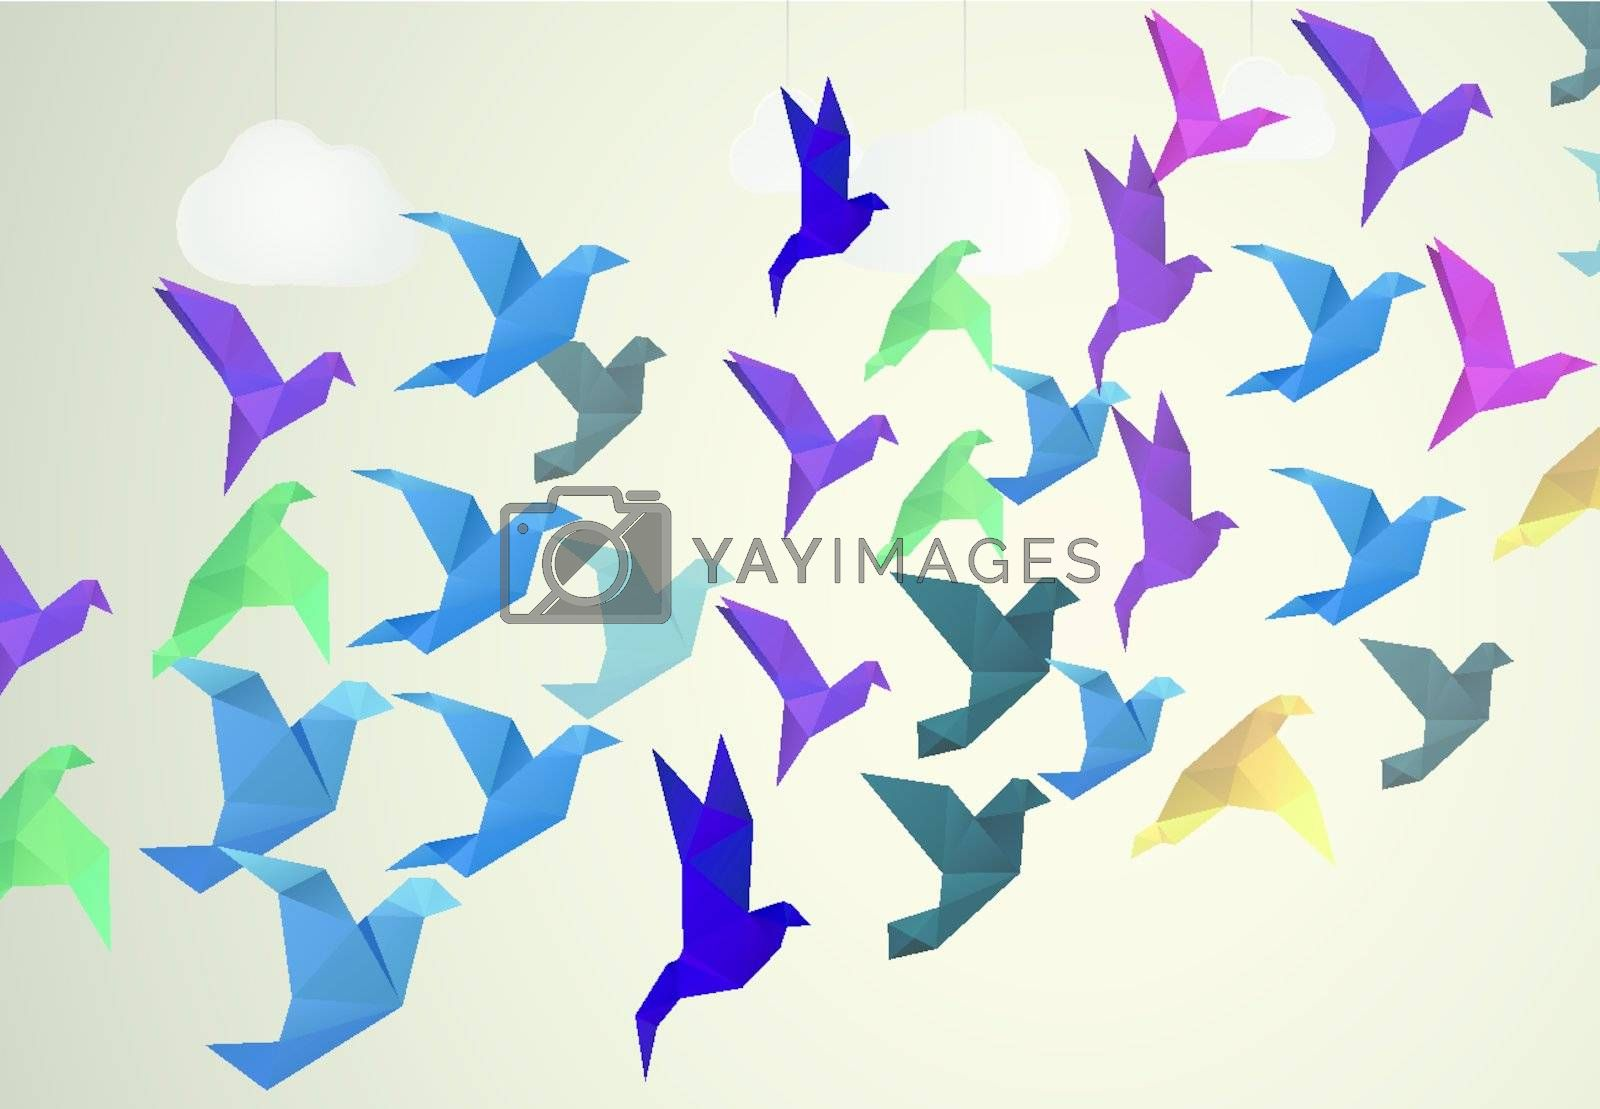 Royalty free image of Origami Birds flying and fake clouds background by Olka